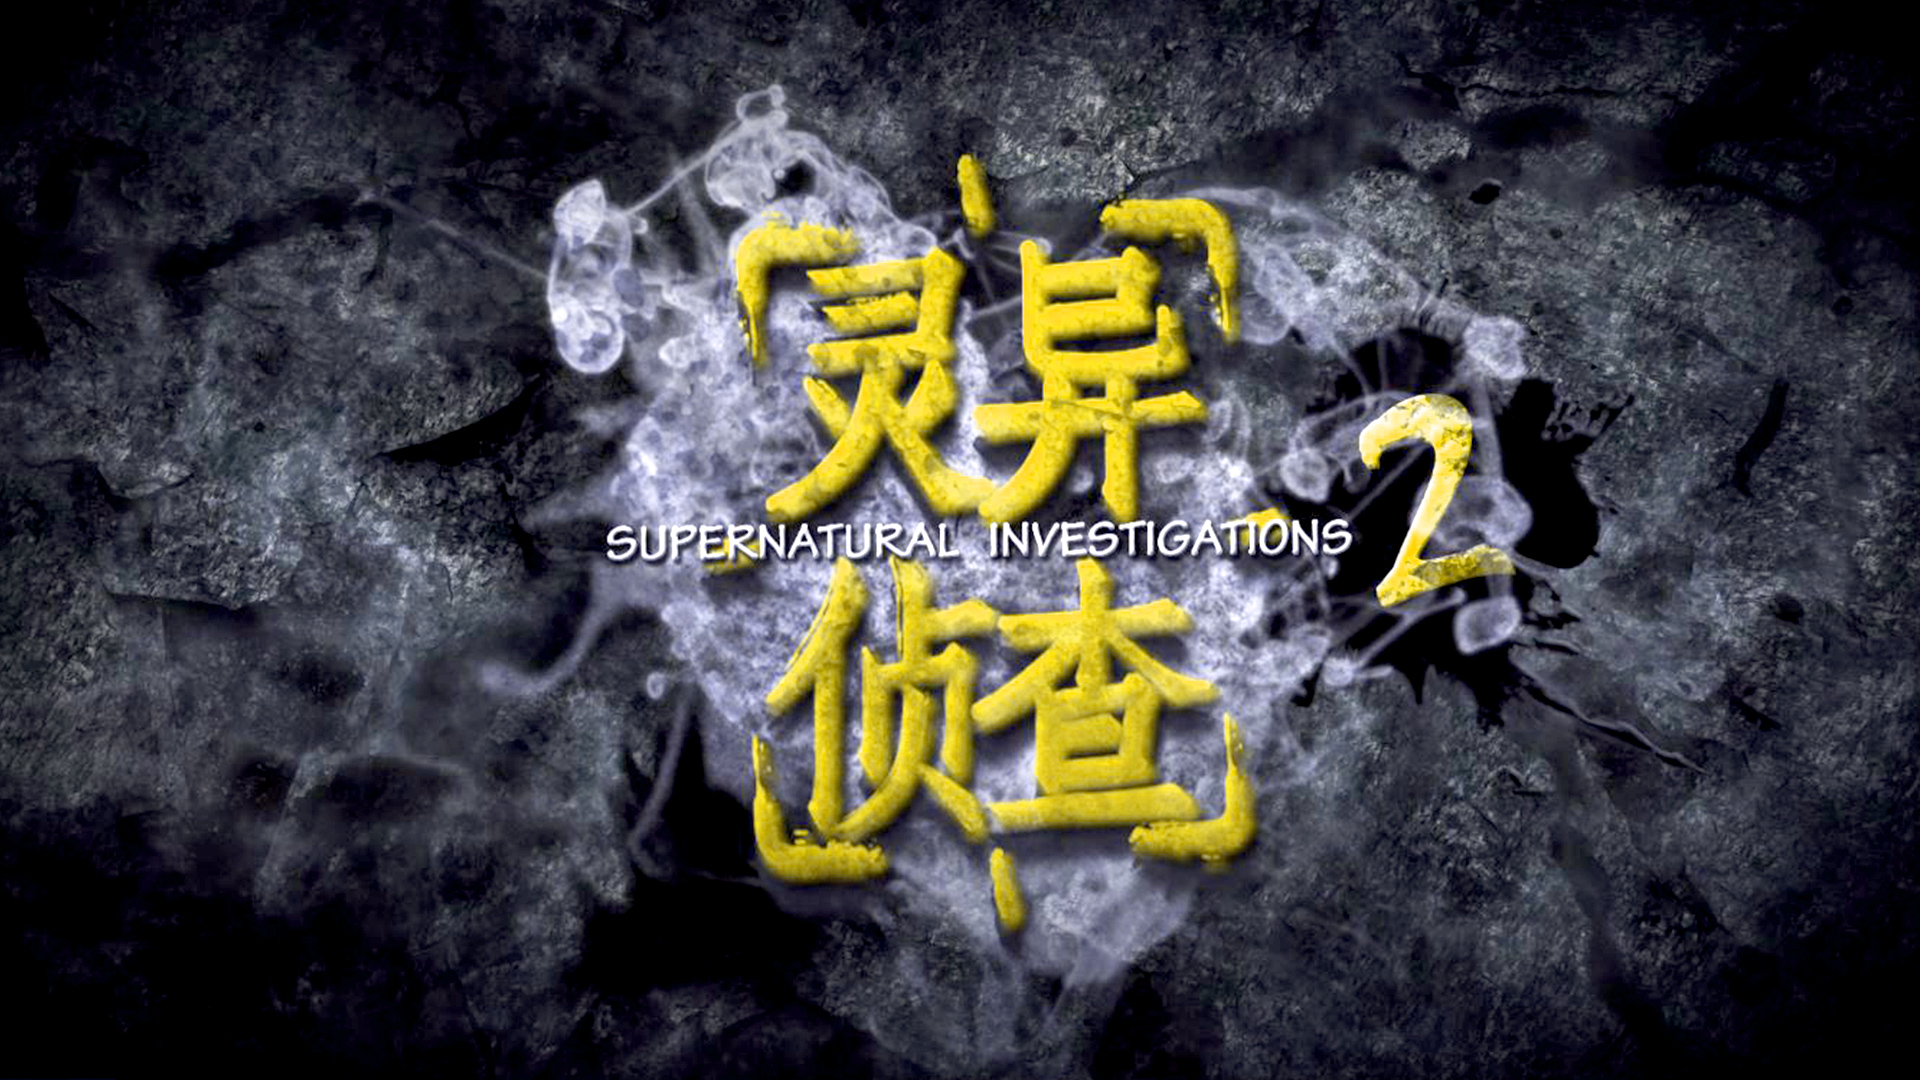 SUPERNATURAL INVESTIGATIONS II